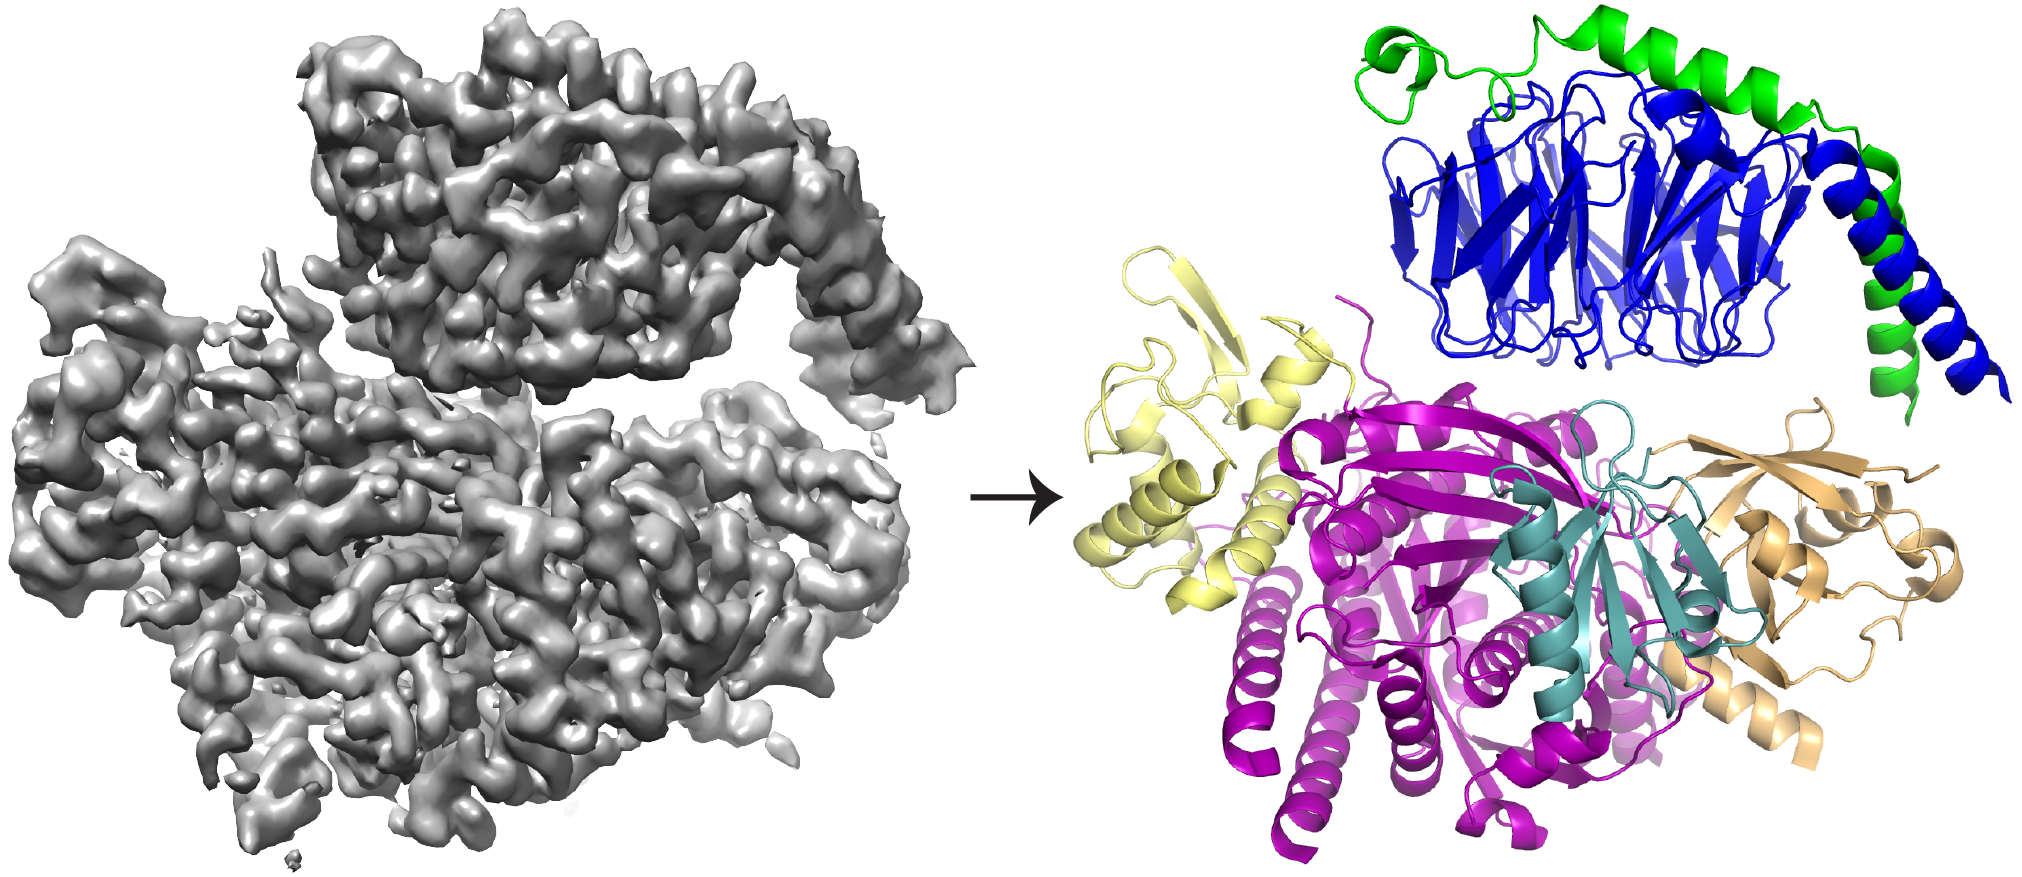 The cryo-EM 3D reconstruction (left) of the protein P-Rex1 bound to Gβγ, and the protein model (right) showing that Gβγ (top; blue and green) binds to a compact, multi-domain surface on P-Rex1 (bottom; yellow, magenta, teal and gold). Image credit: Jennifer Cash, Life Sciences Institute